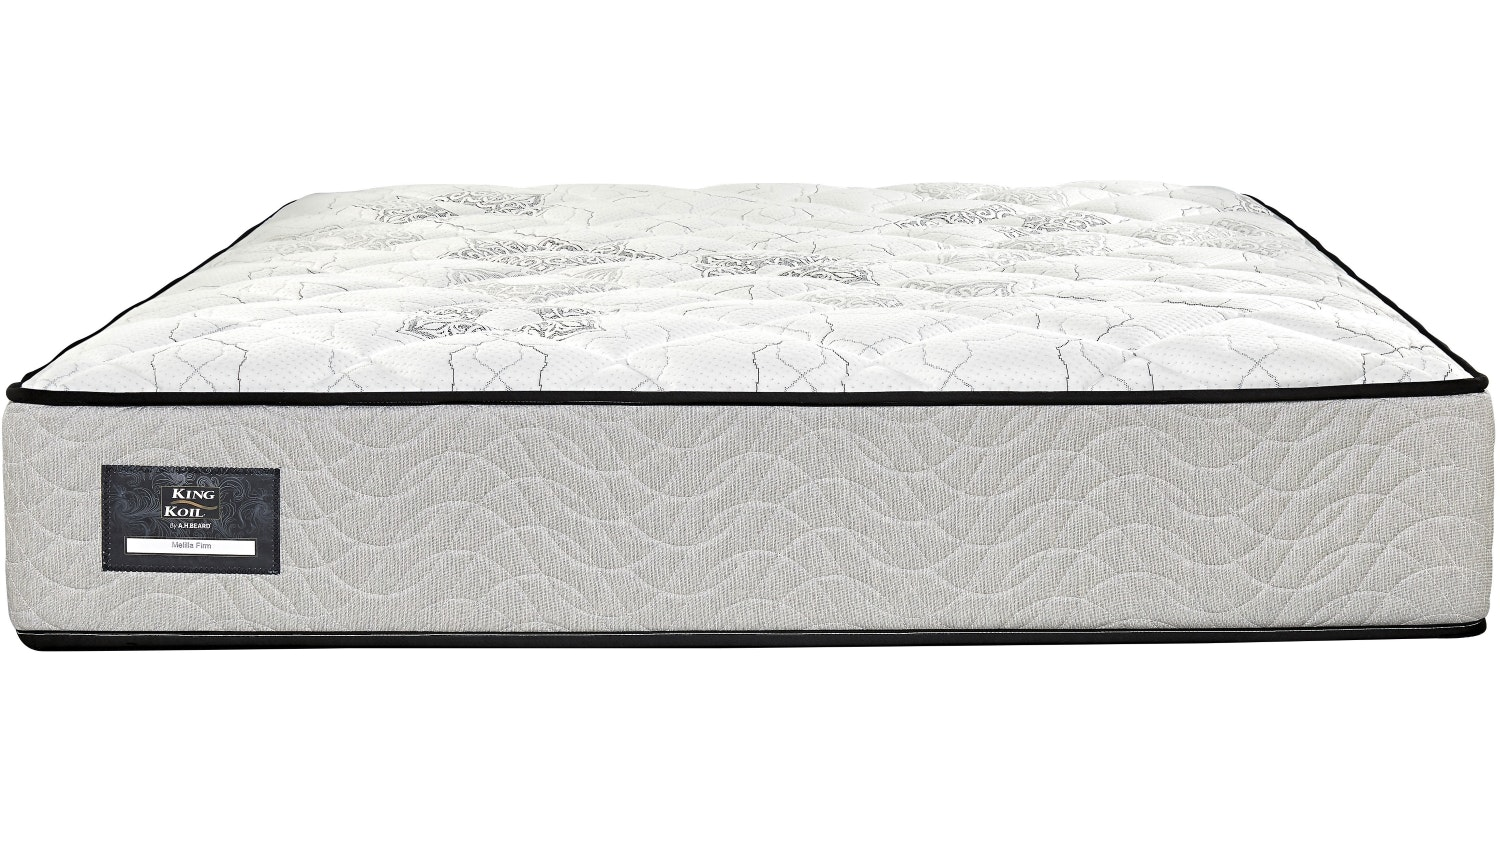 King Koil Melilla Firm Mattress